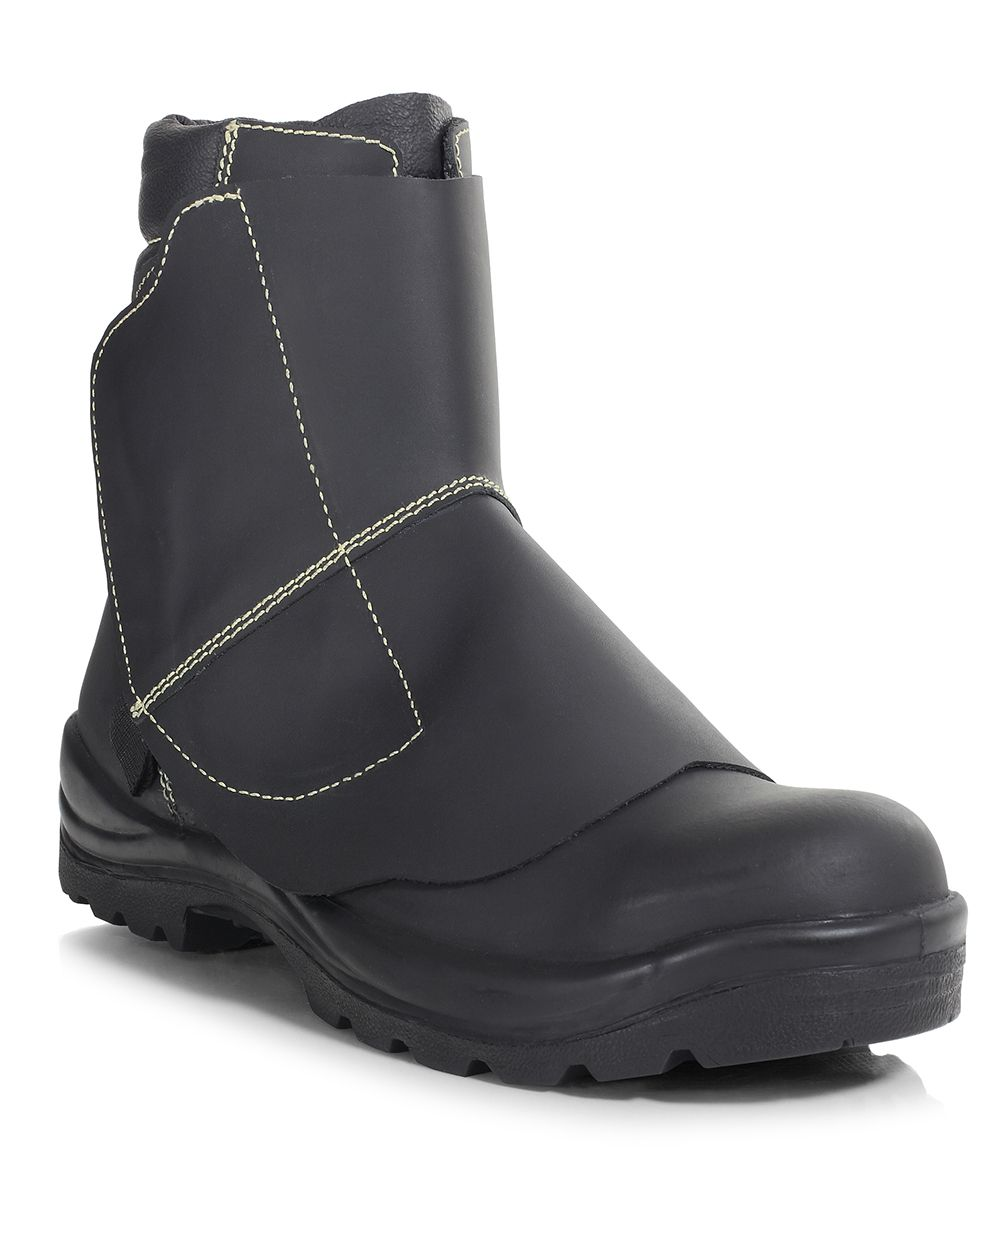 PB26A Aluminium Foundry Boot